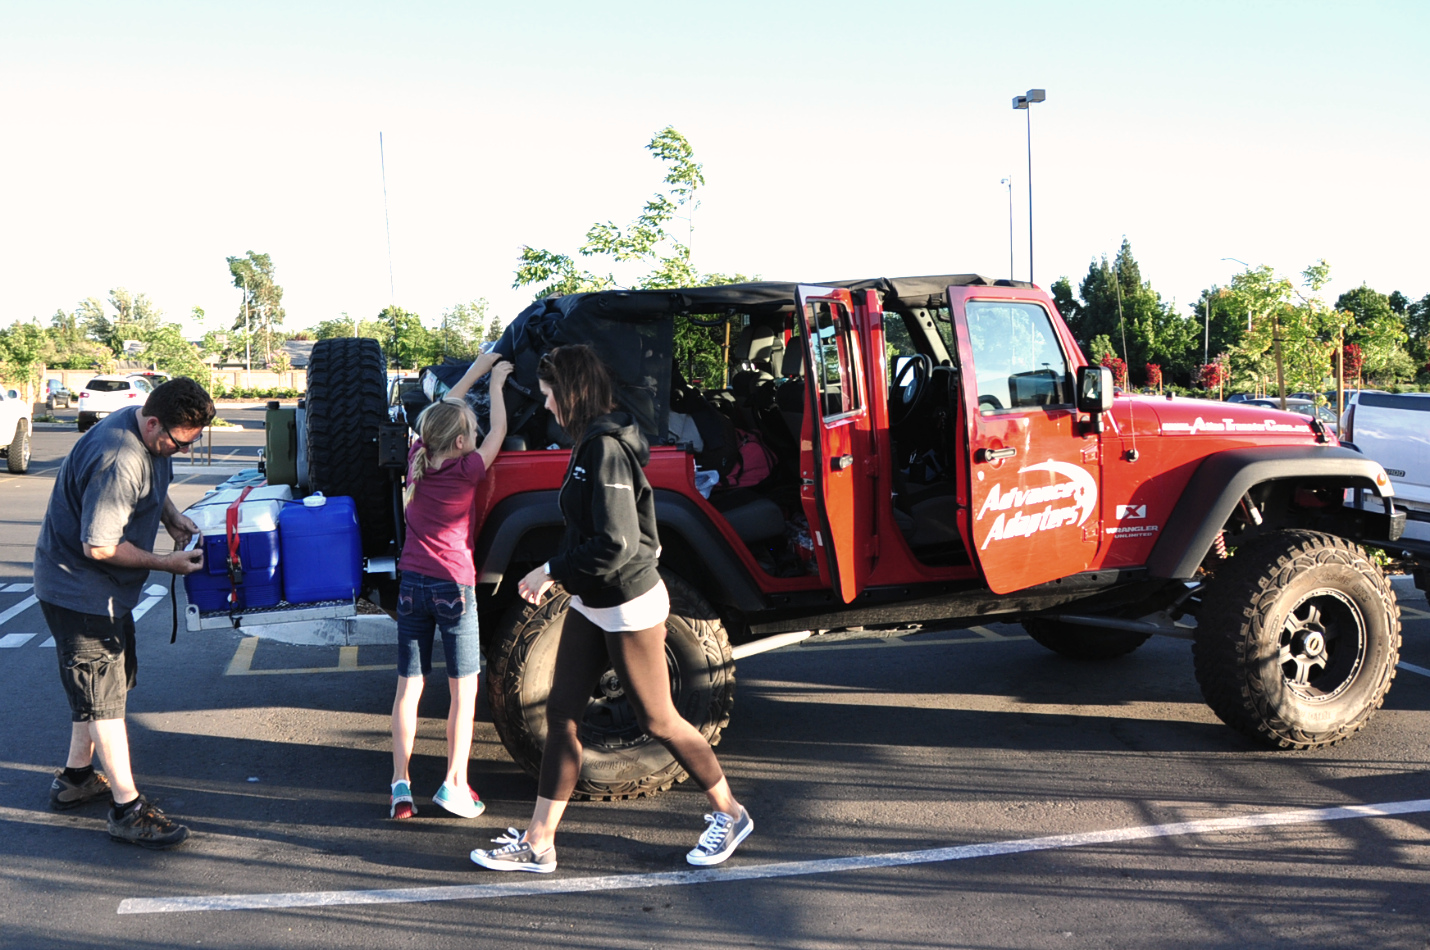 Last minute packing in the Walmart parking lot.  Clovis, CA.